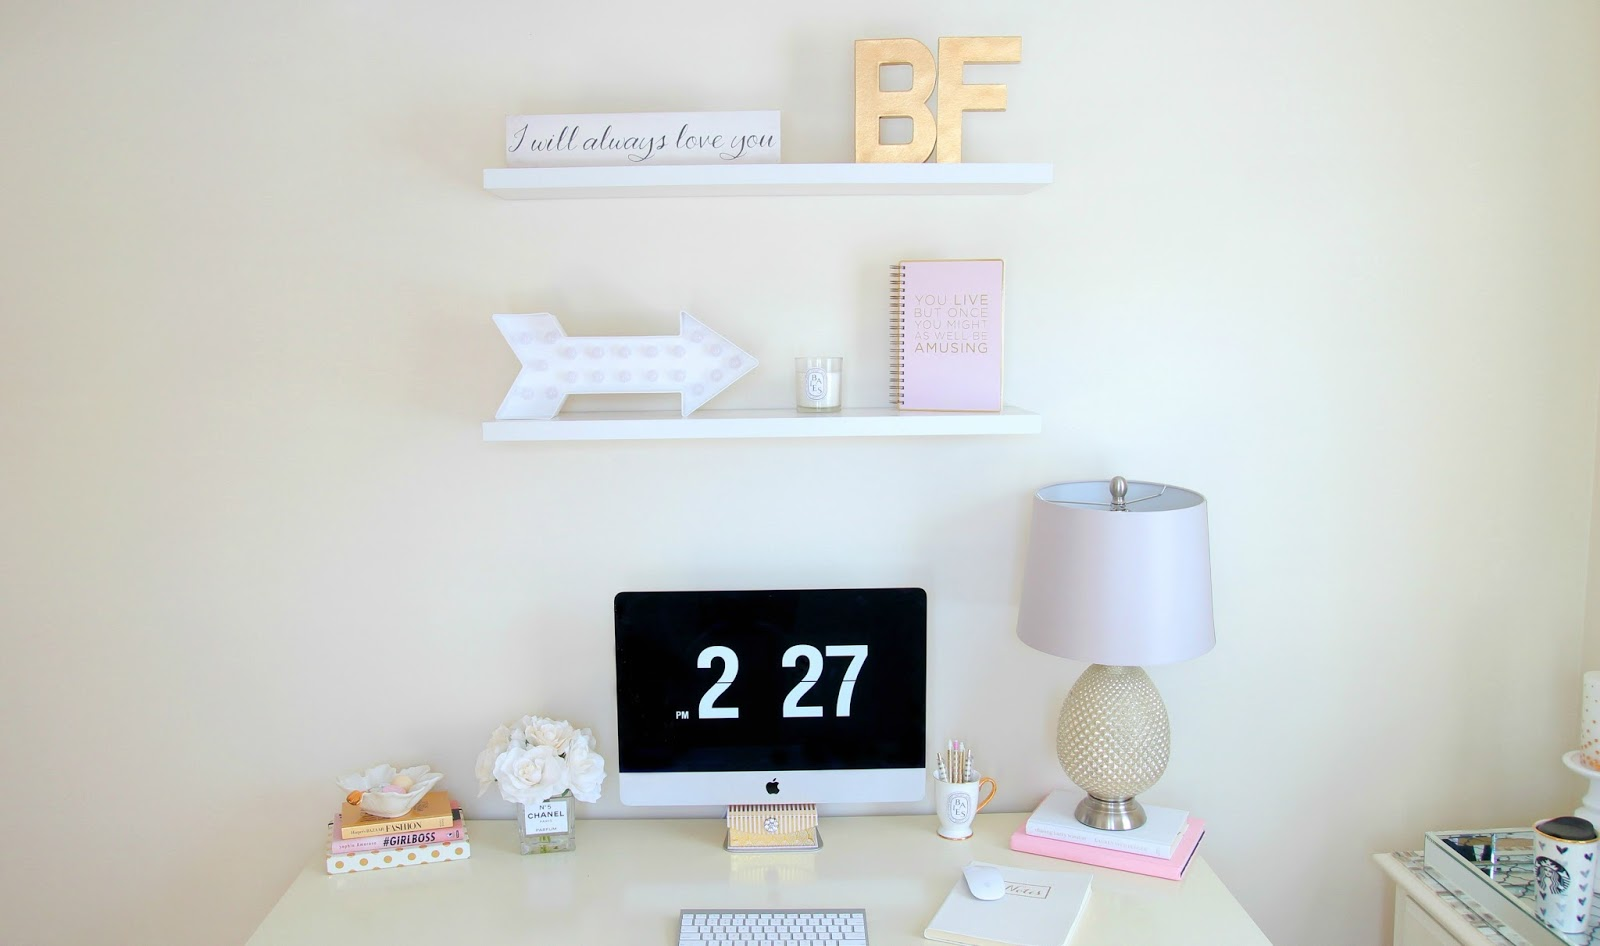 Desk Decor - Office Decor - Home Office - Girly Desk - Ikea Desk - Floating Shelves - DIY Room Decor - Imac - Clock Screensaver